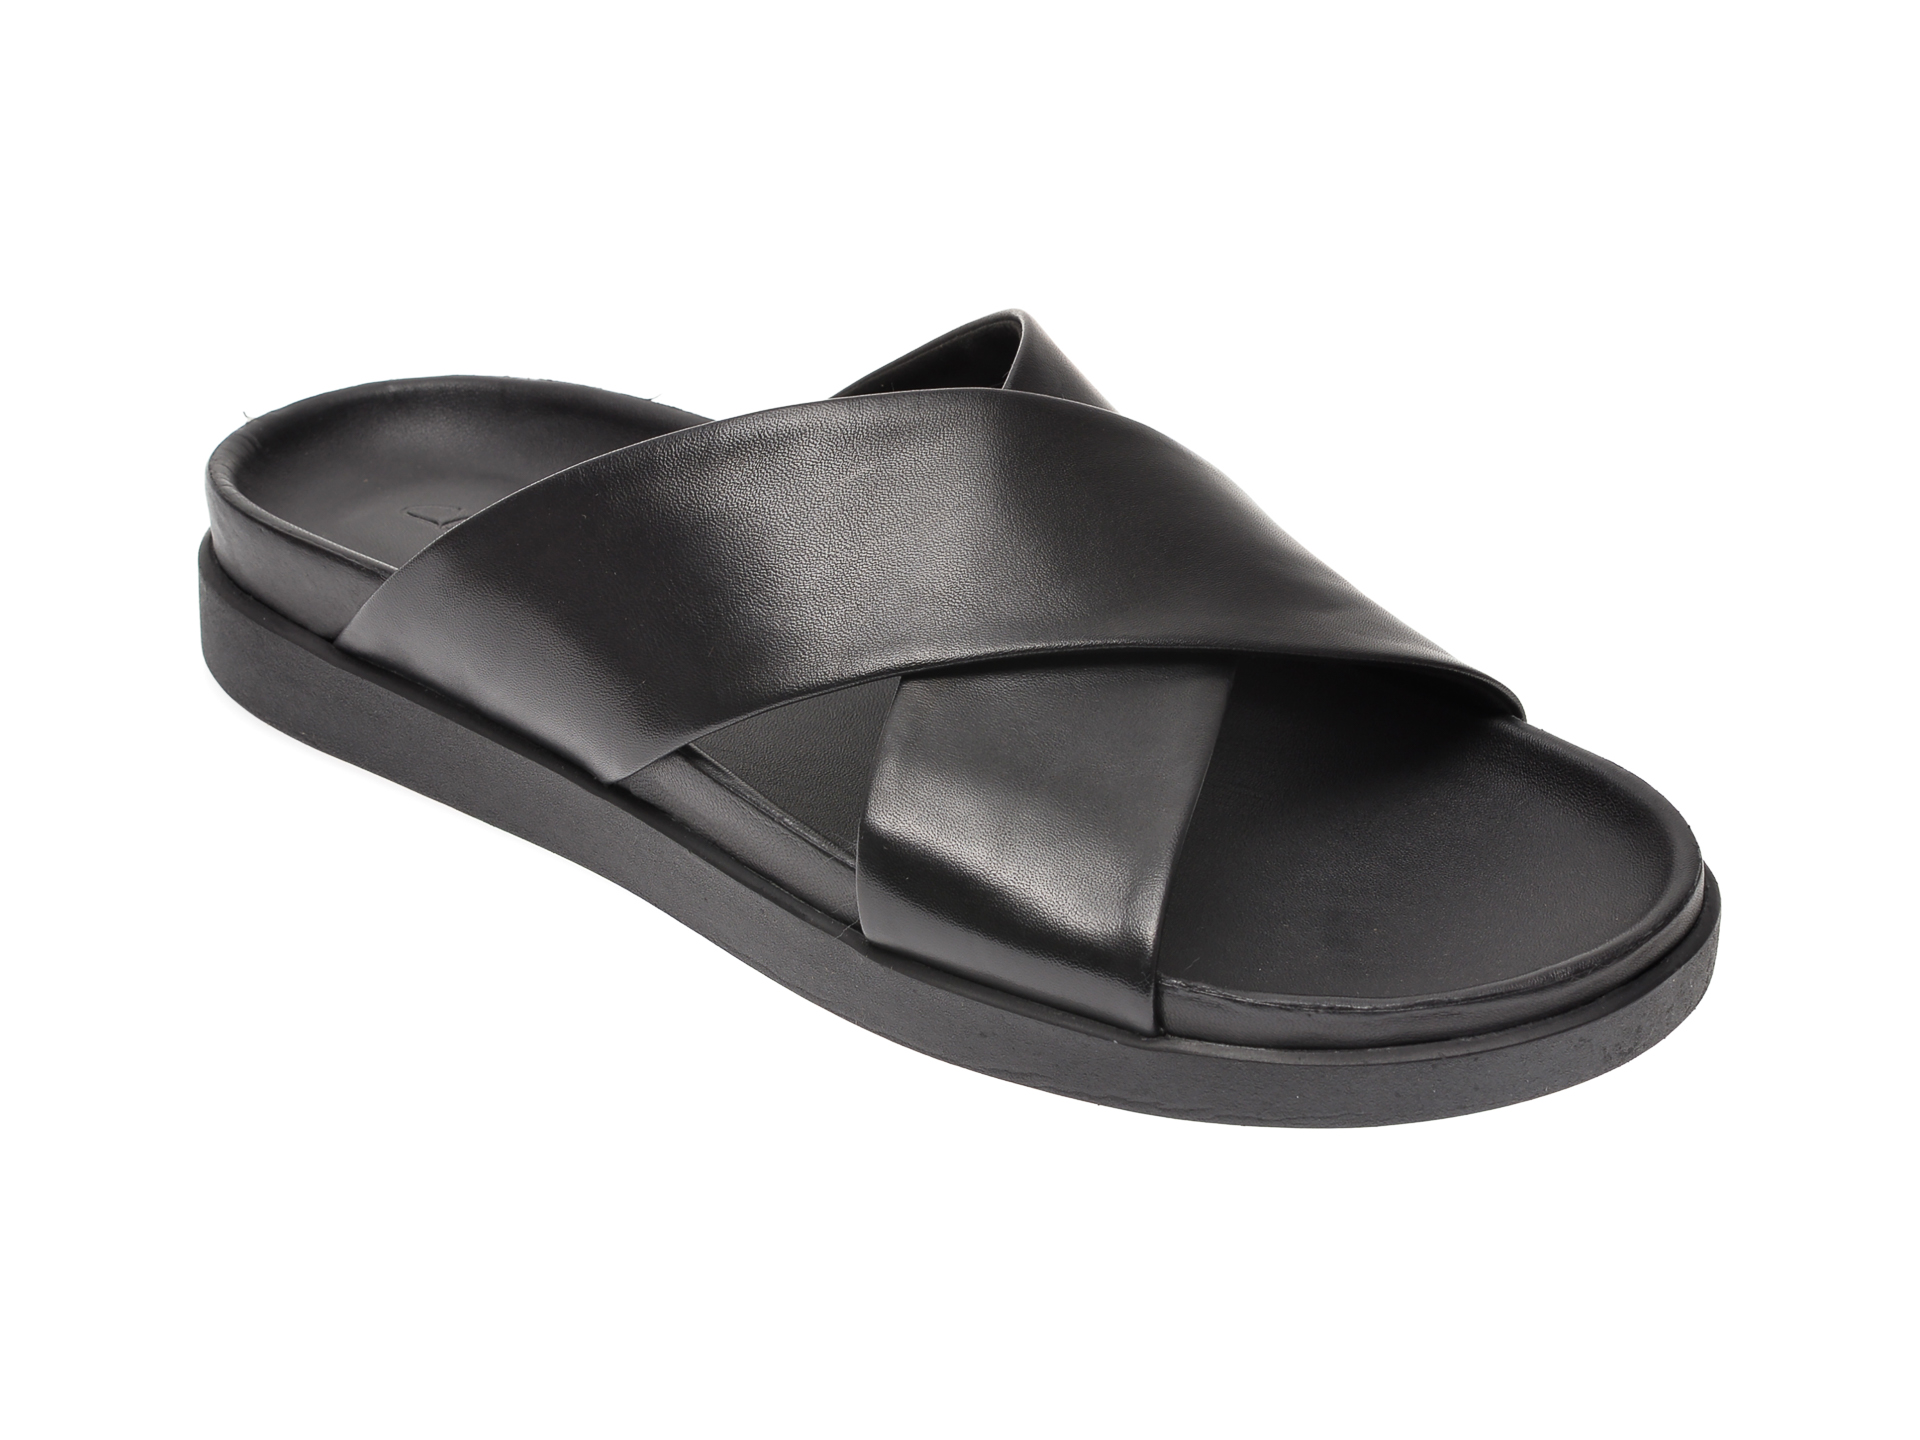 Papuci CLARKS negri, Sunder Cross, din piele naturala imagine